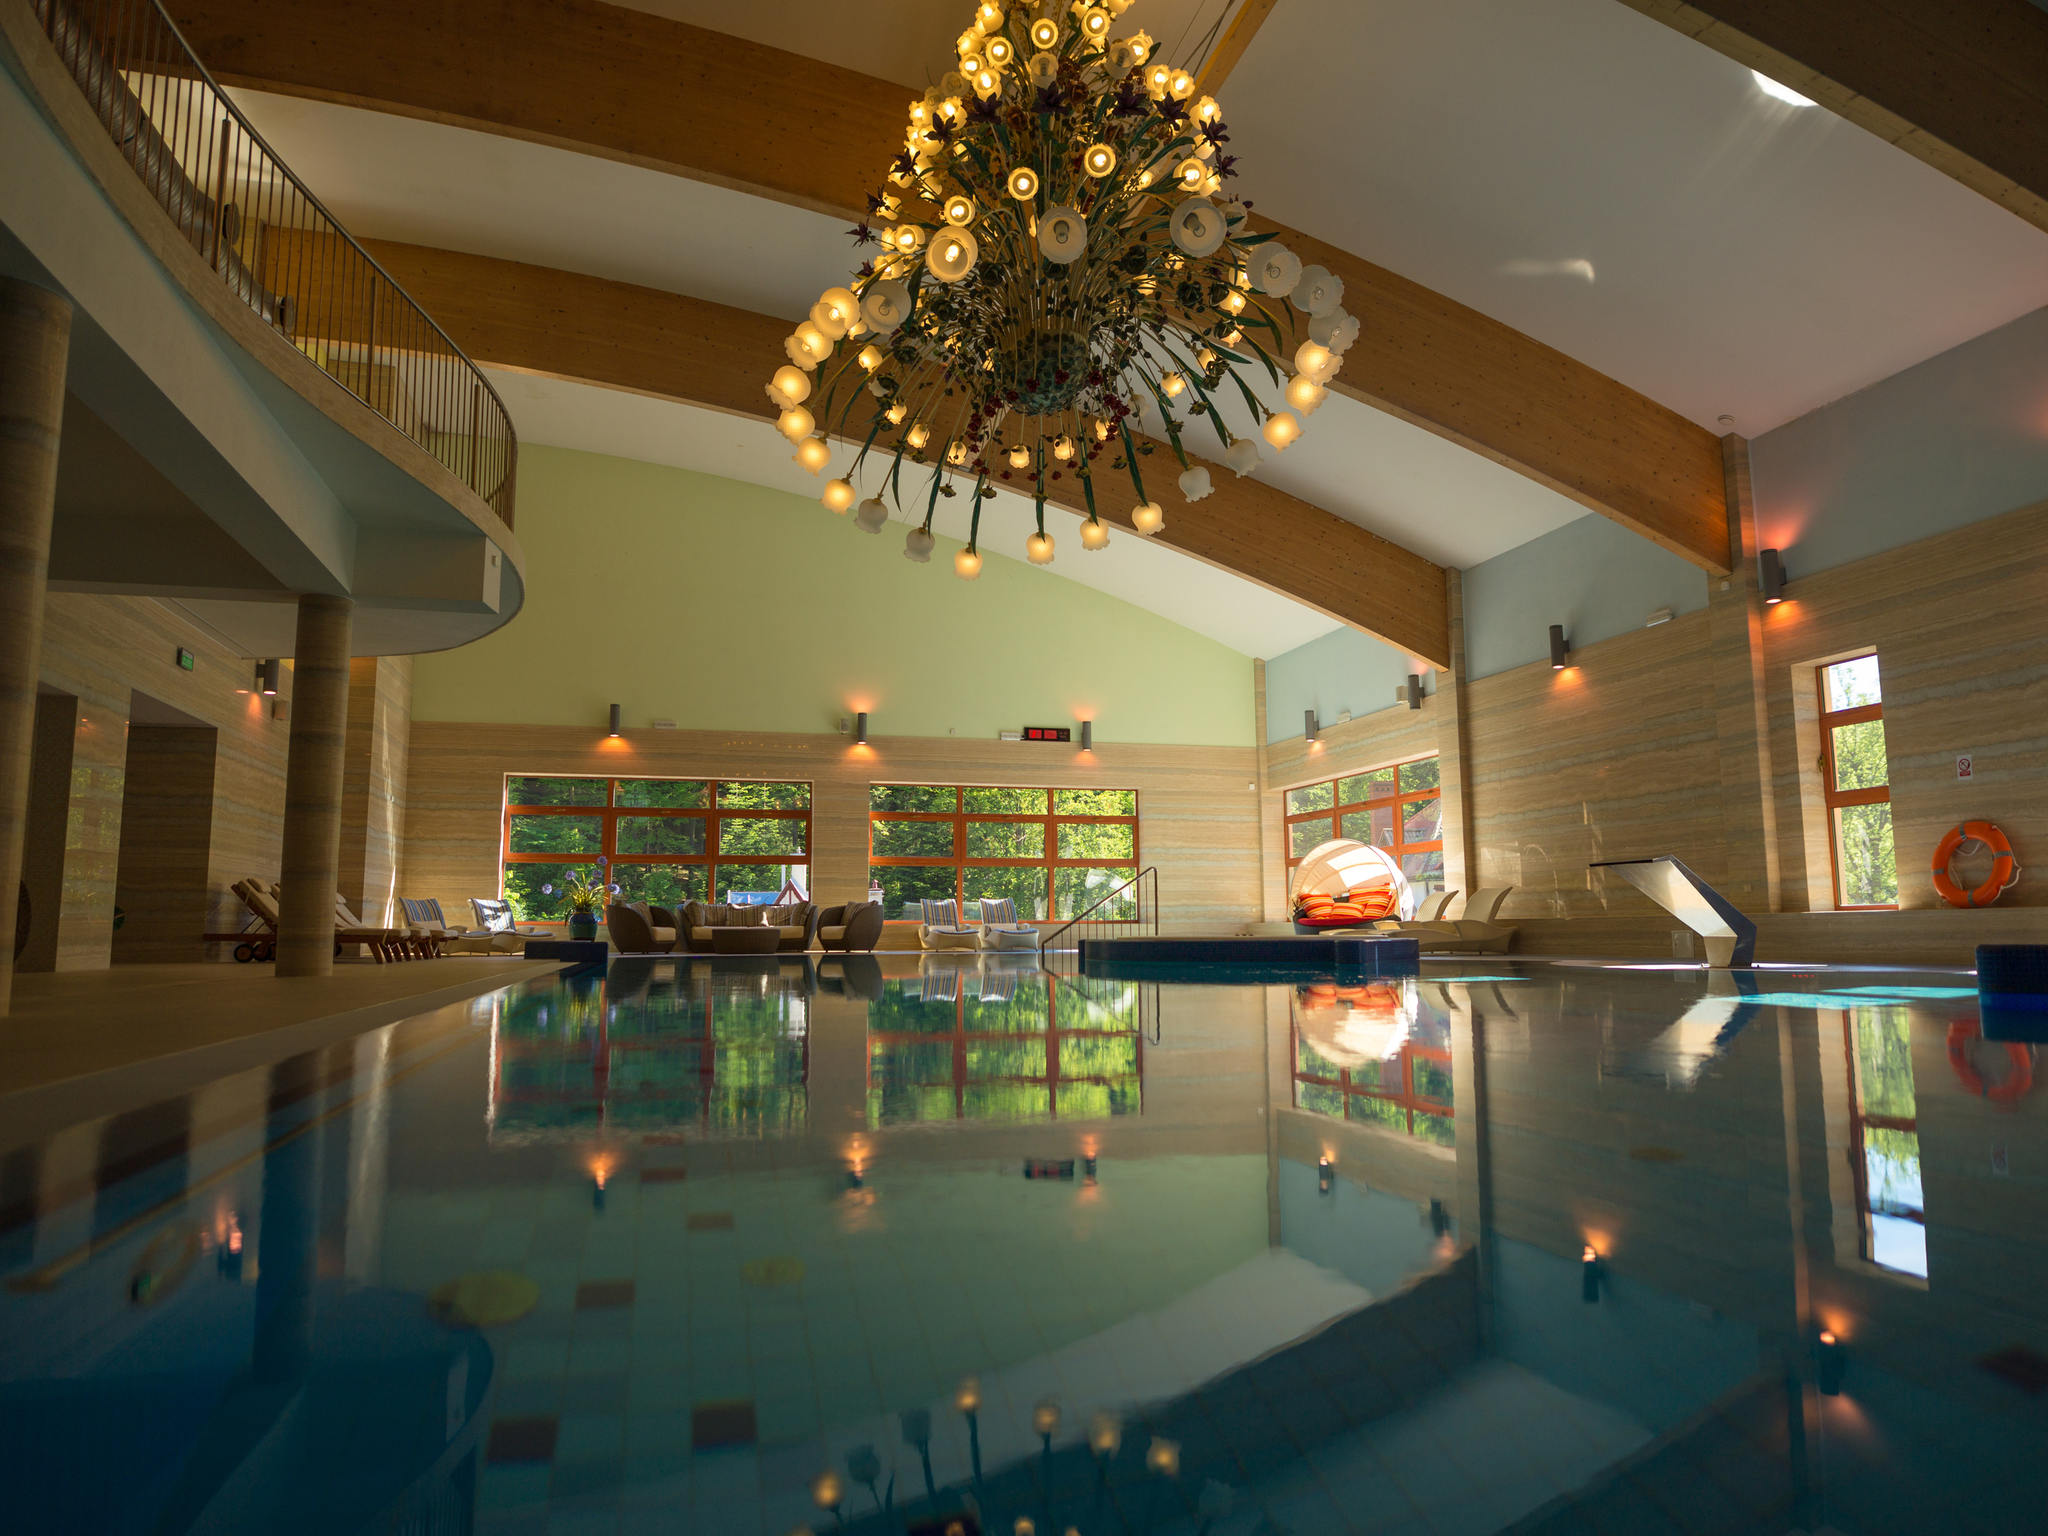 โรงแรม – Hotel Mercure Krynica Zdroj Resort & Spa